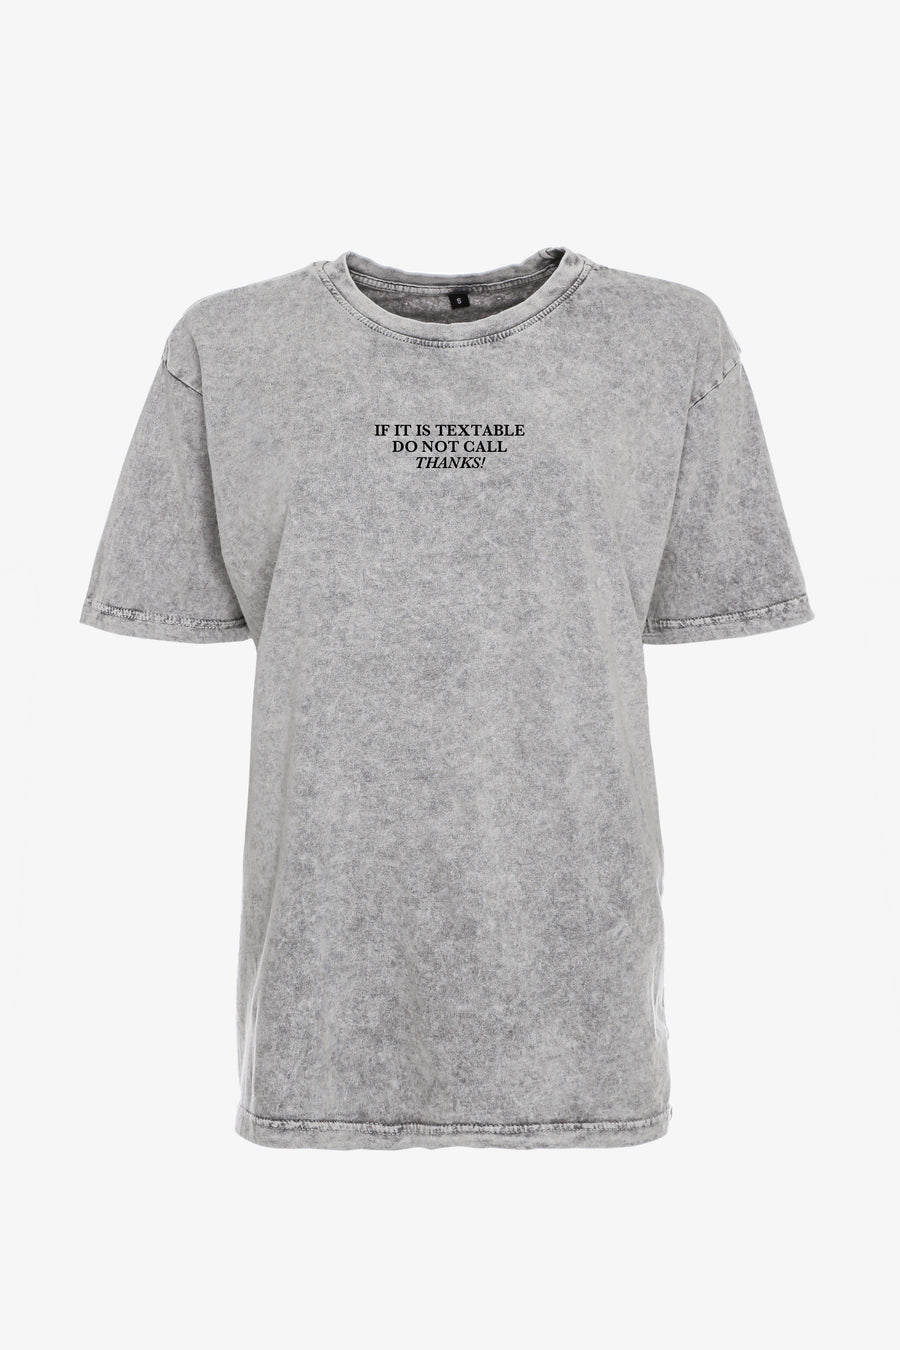 Gossengold - Do Not Call Statement T Shirt Damen - washed grey